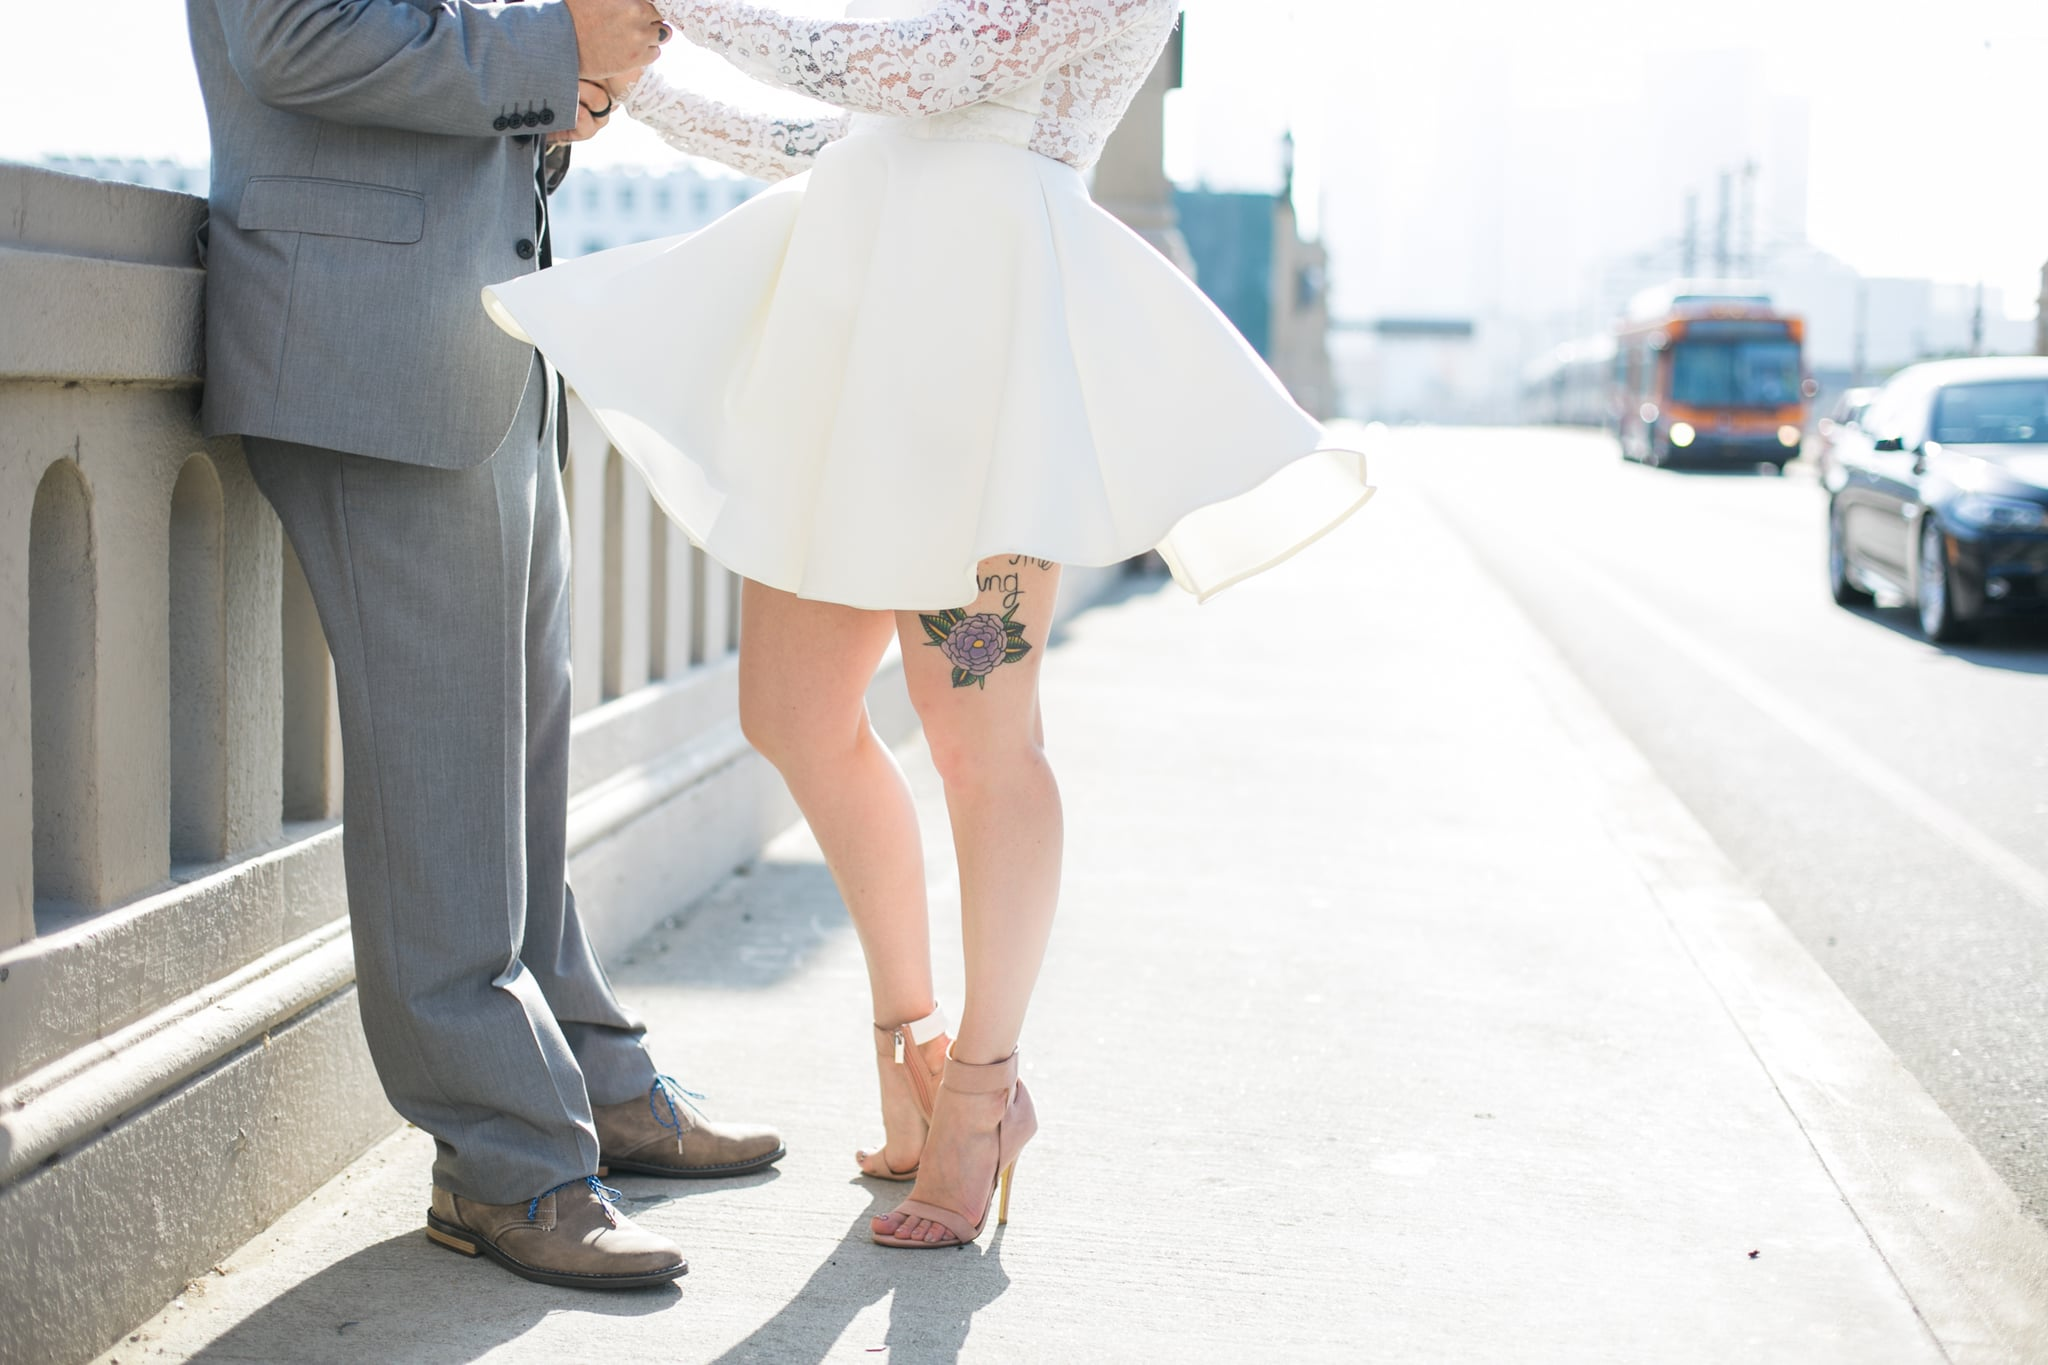 pros and cons of elopement love sex share this link